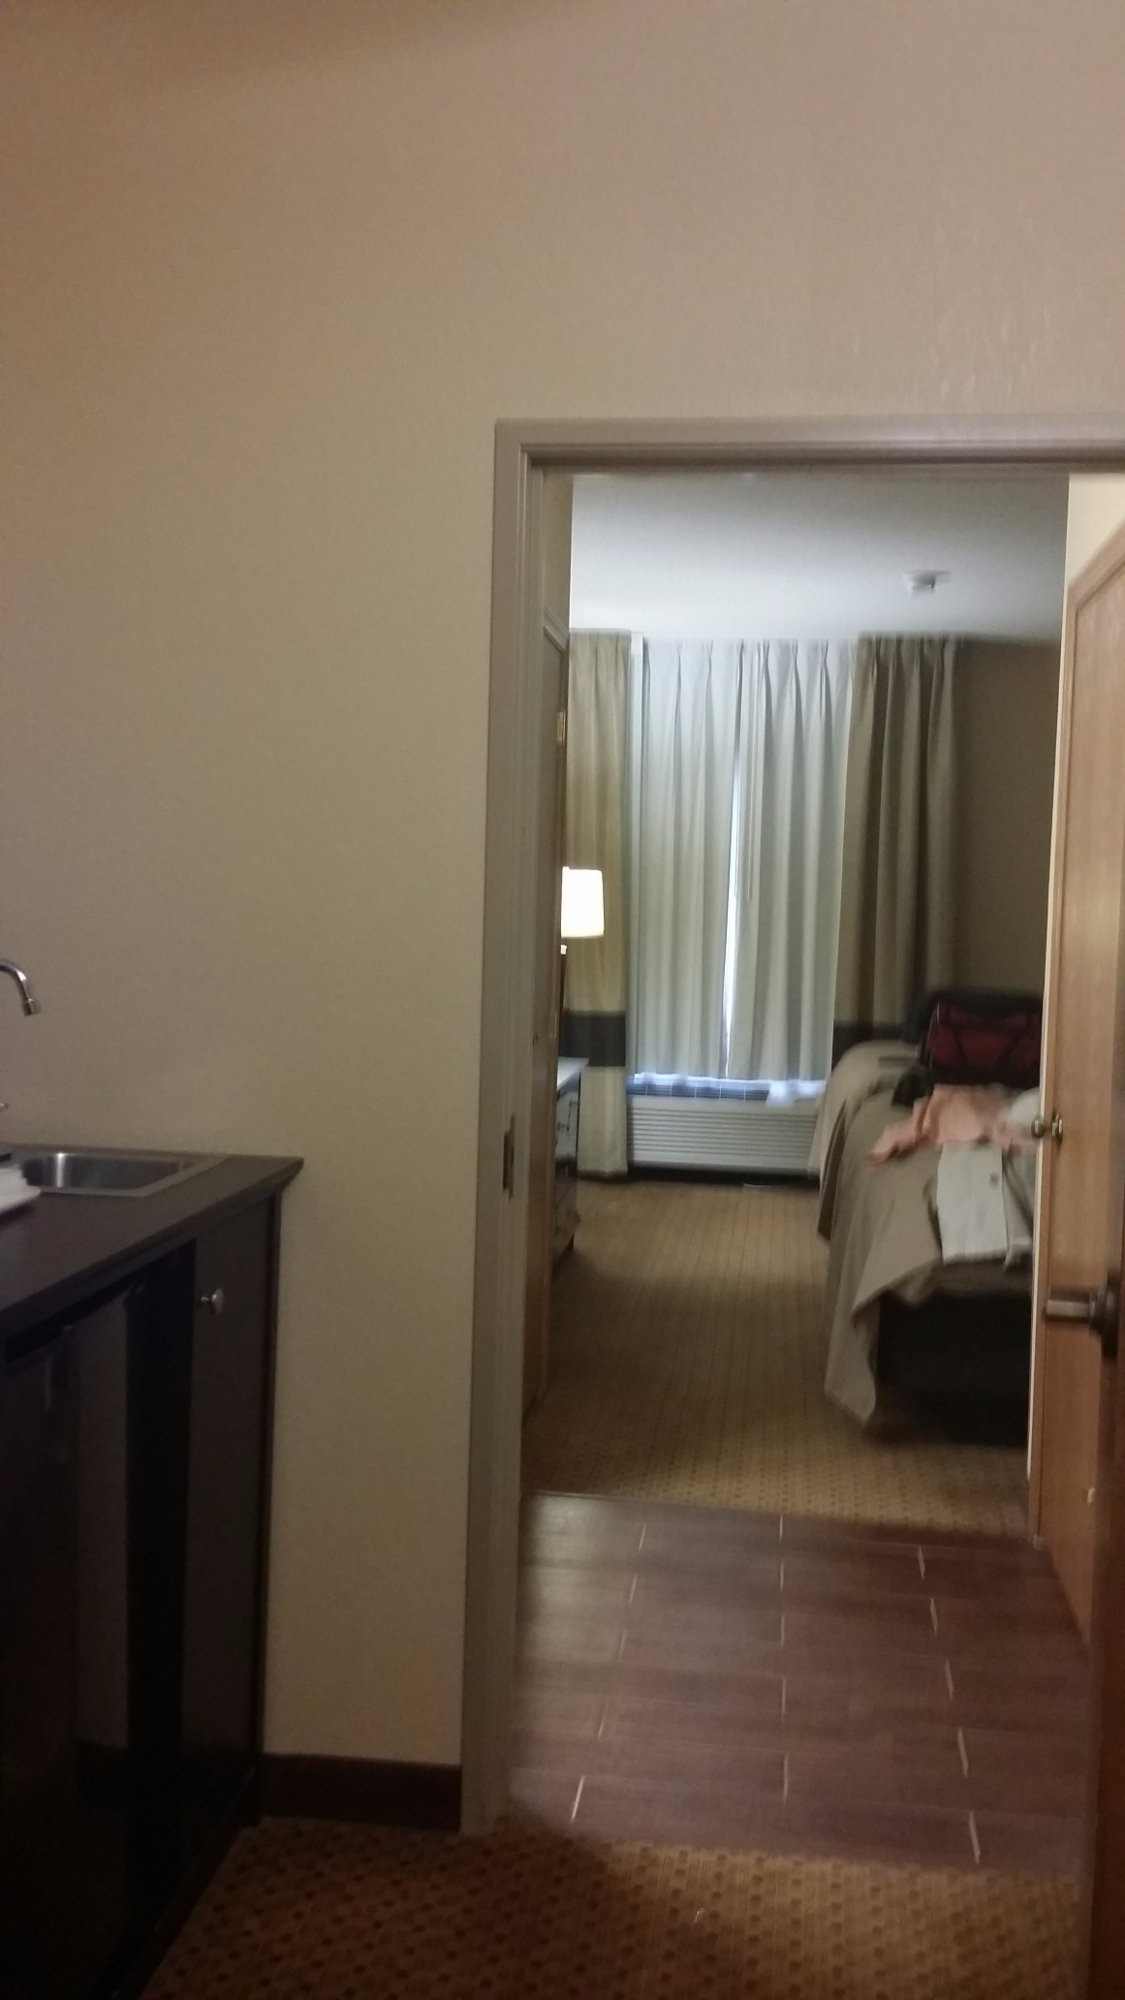 fort Inn Suites 1 0 3 Prices Hotel Reviews